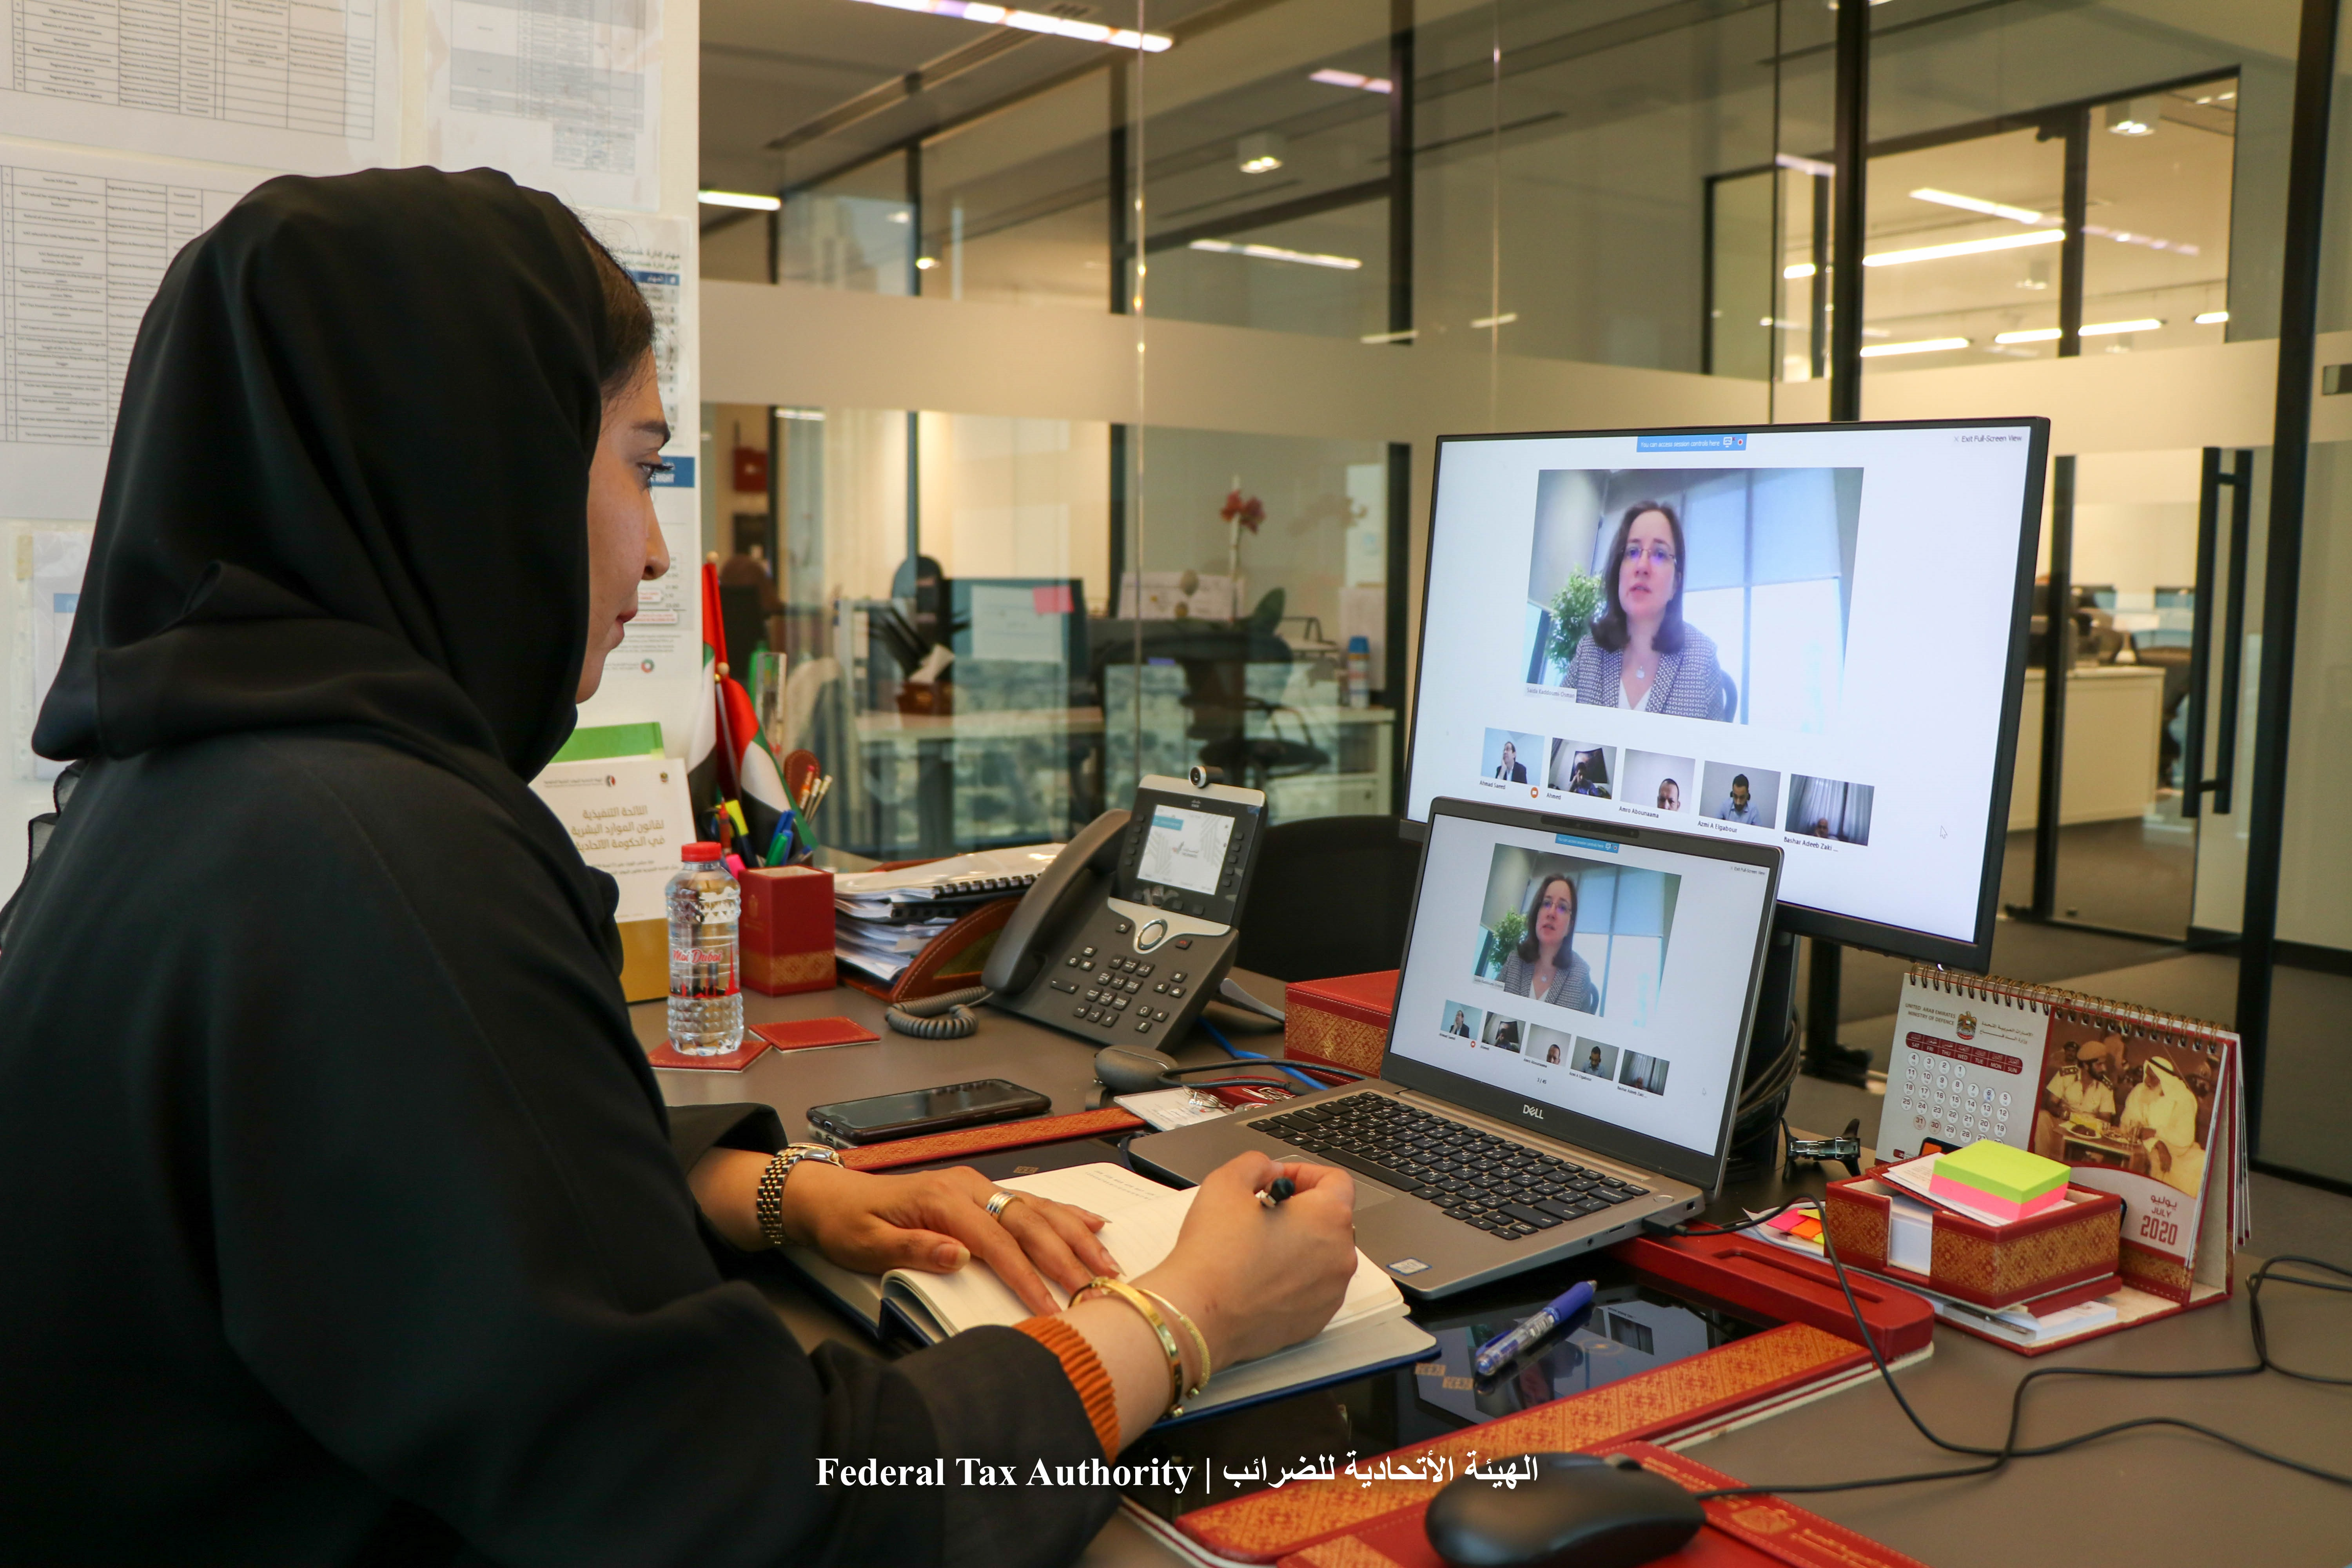 Online workshop held for approved tax agents by UAE Federal Tax Authority